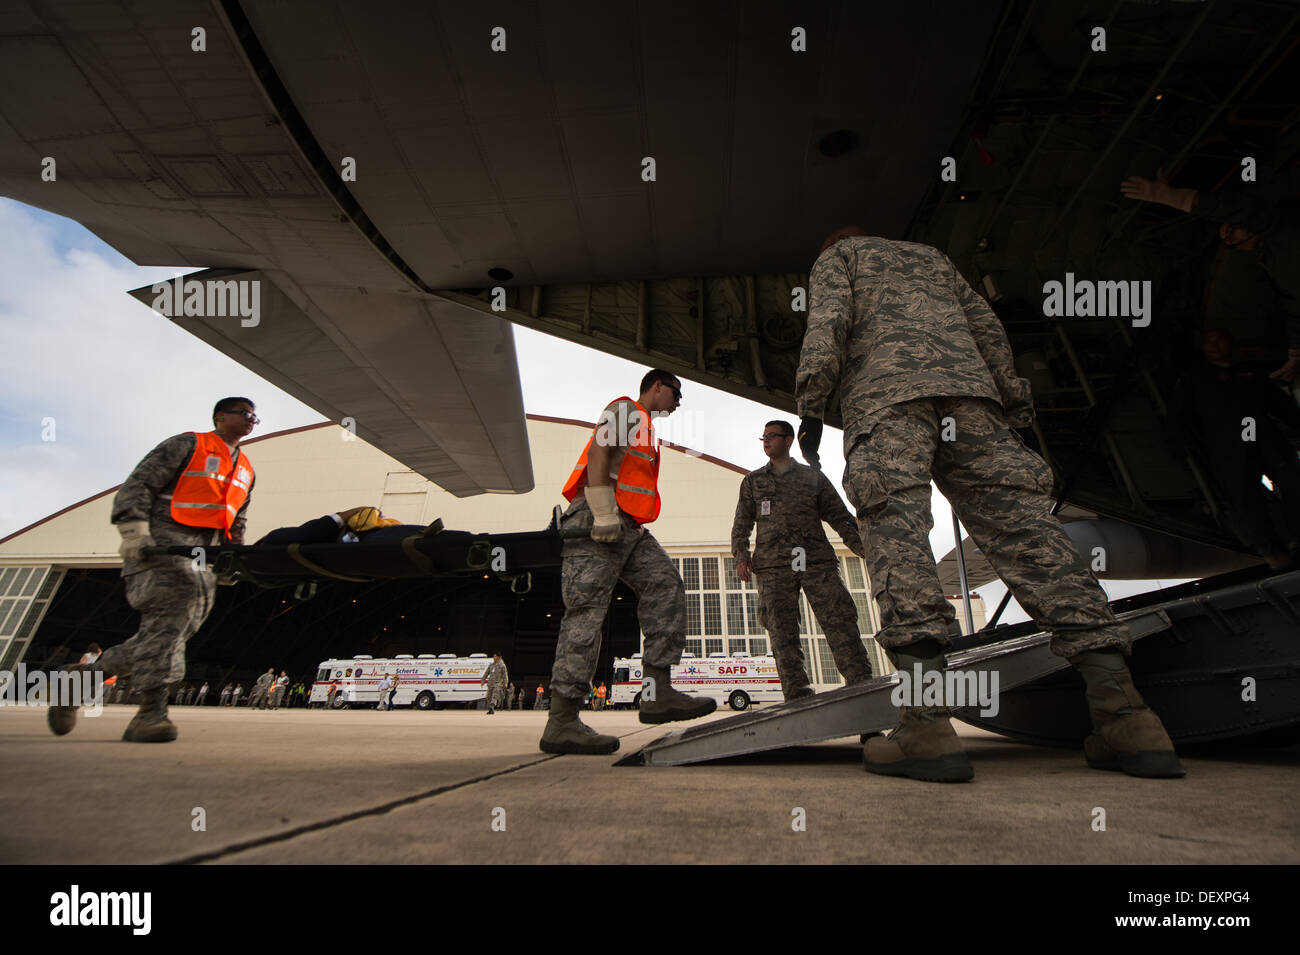 Airmen carry a patient onto a WC-130J Hurricane Hunter while participating in the annual San Antonio Mass Casualty Exercise Event at Joint Base San Antonio-Lackland, Texas, Sept. 19, 2013. The SAMCEE 13 was a complex disaster scenario designed to test the - Stock Image